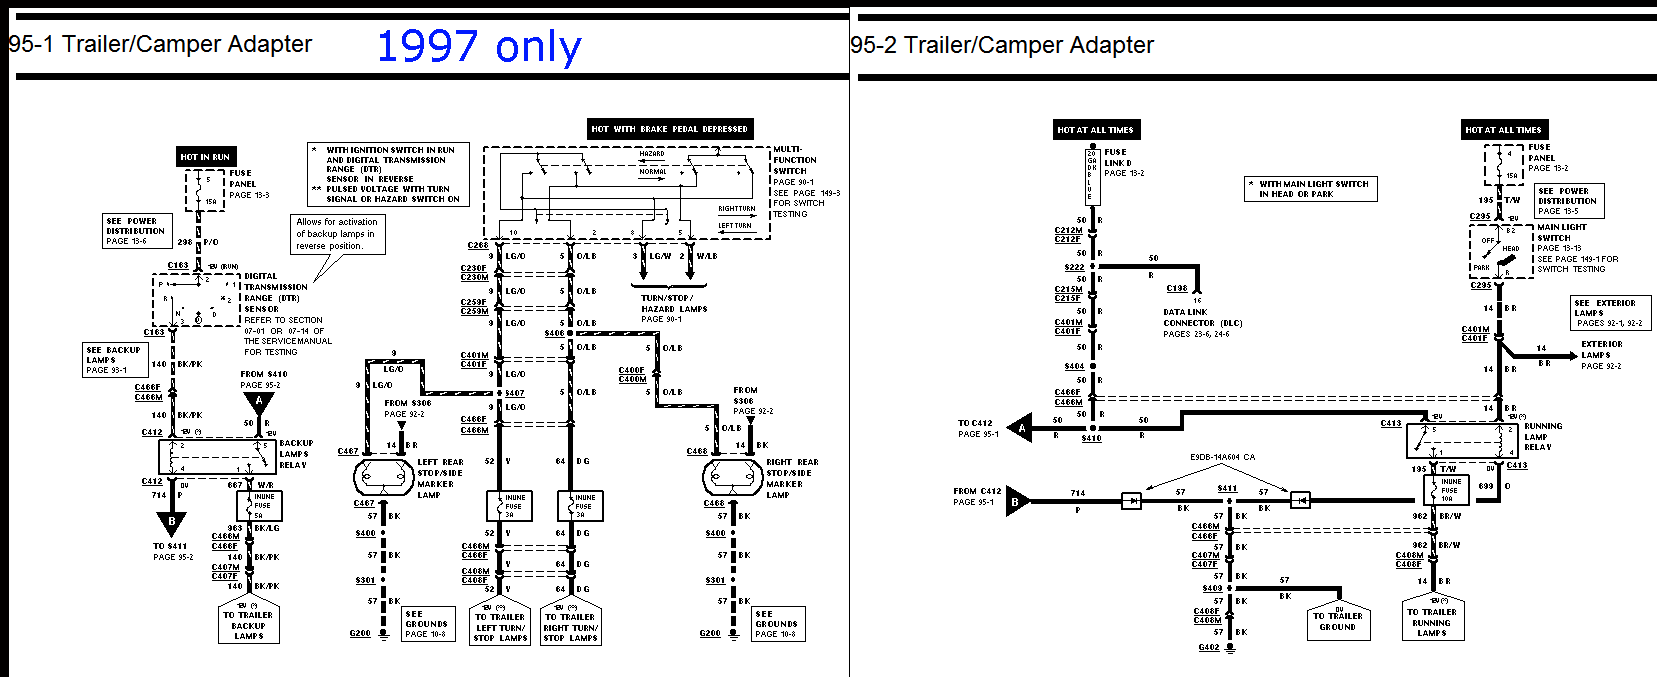 Hopkins Trailer Wiring Diagram 96 F350 Portal Hoppy Tow Package And Questions Ford Truck Rh Trucks Com Super Duty Pickup